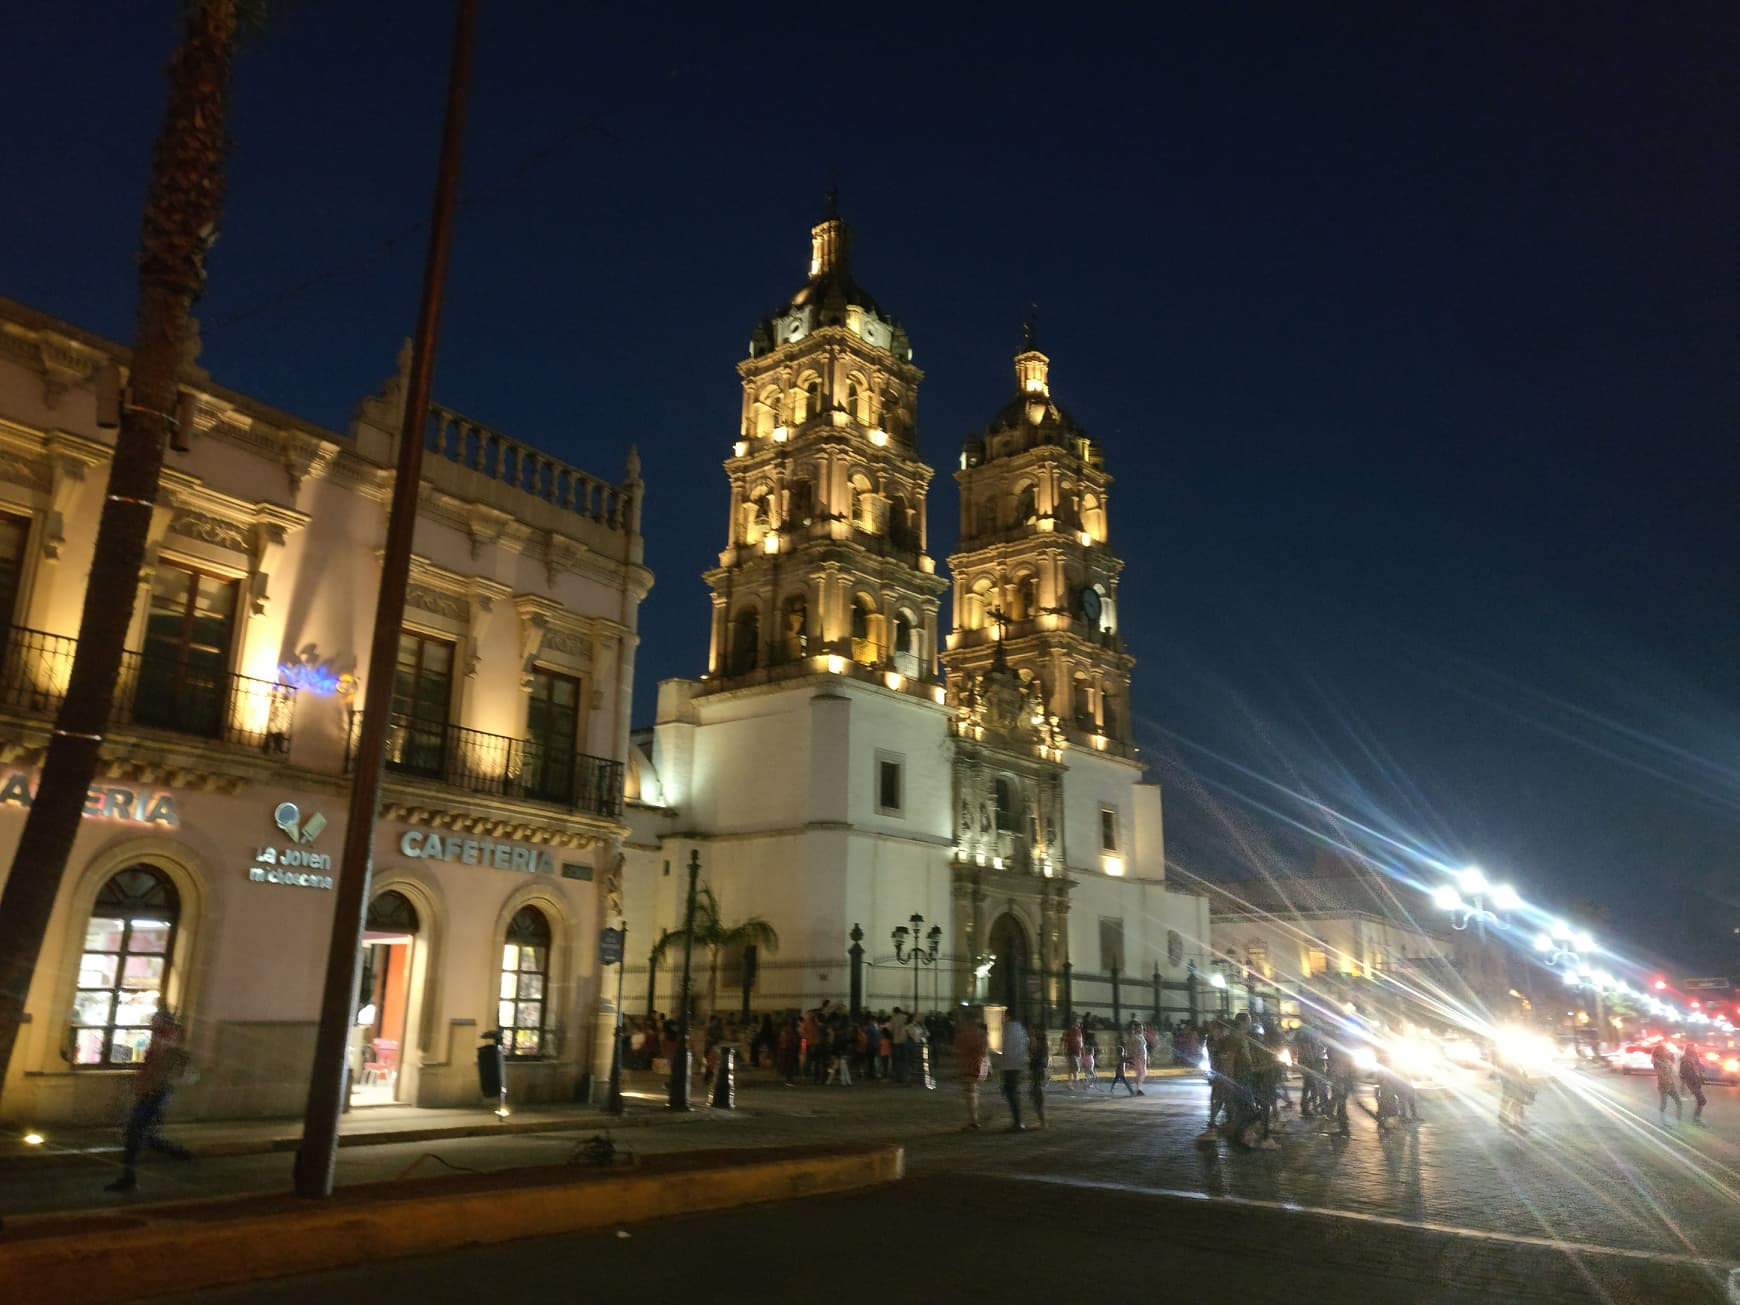 durango by night, mexique, cathédrale